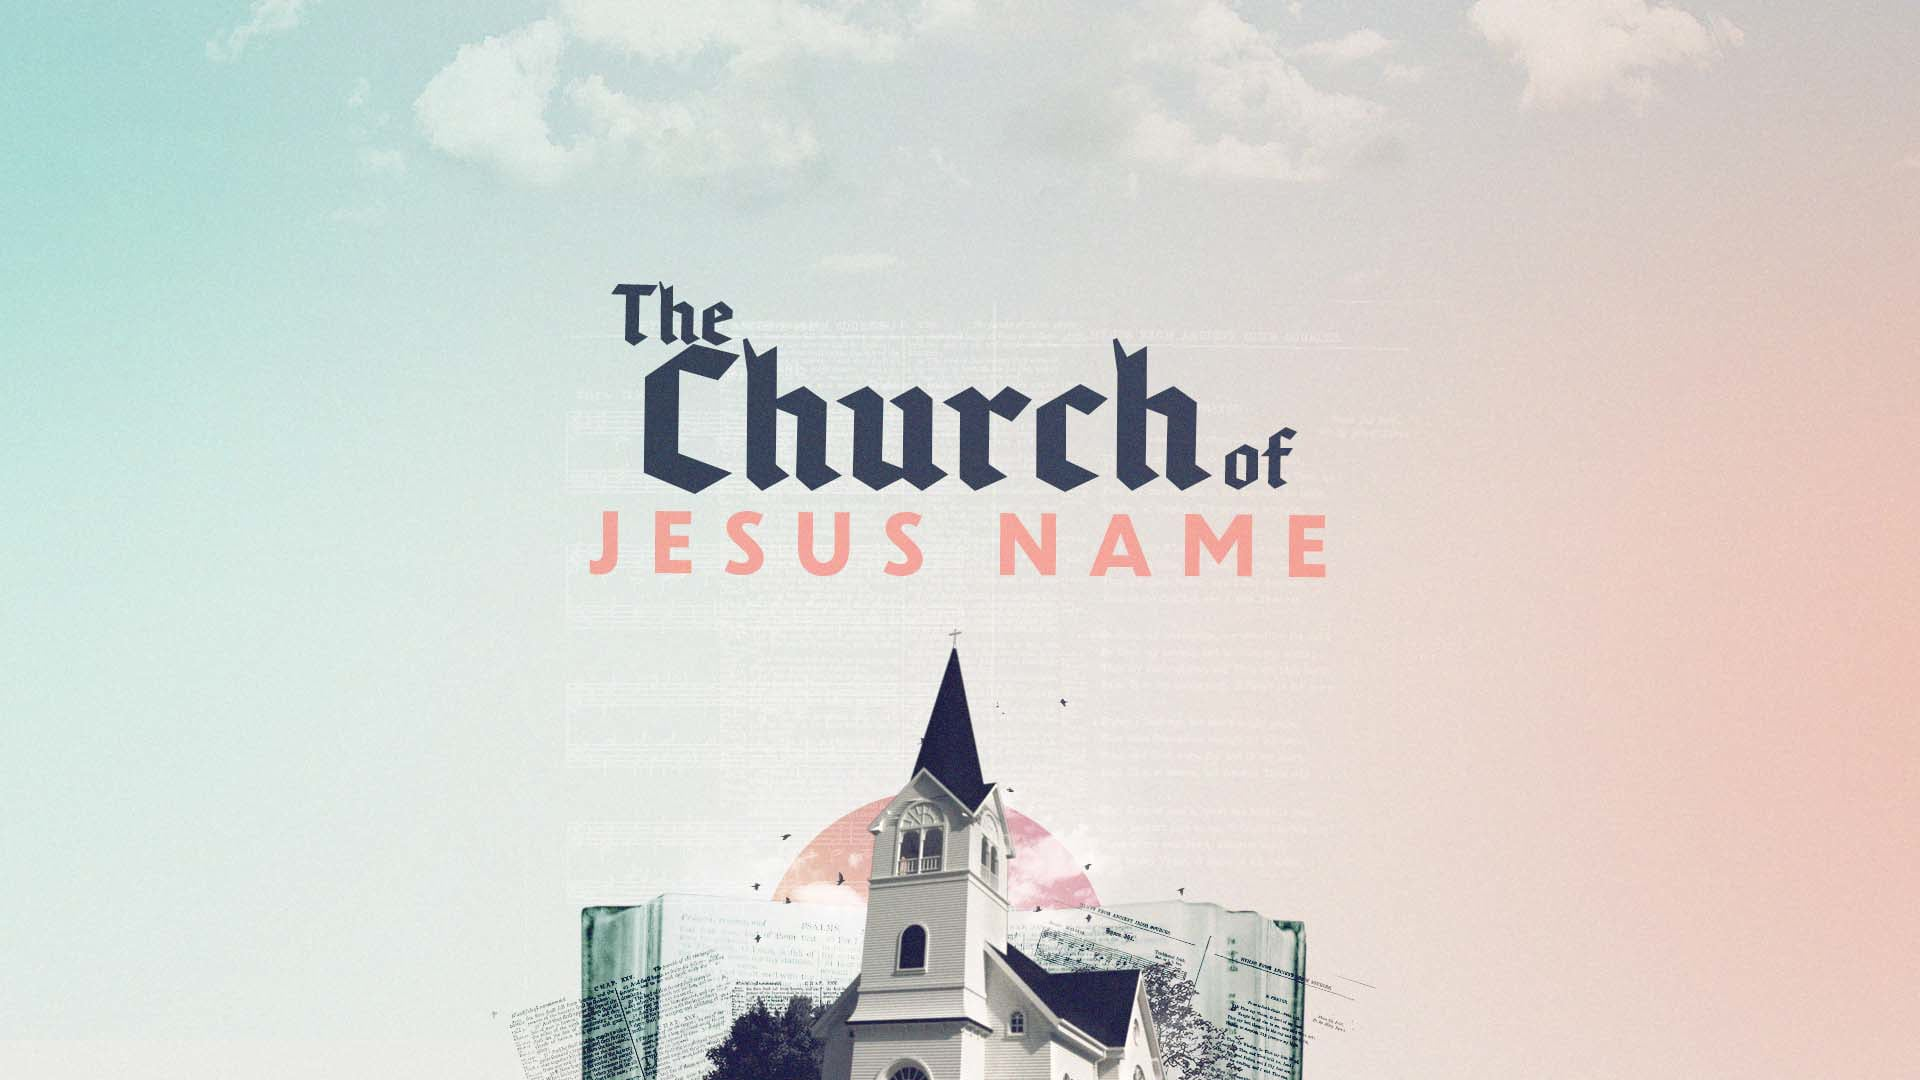 The Church of Jesus Name